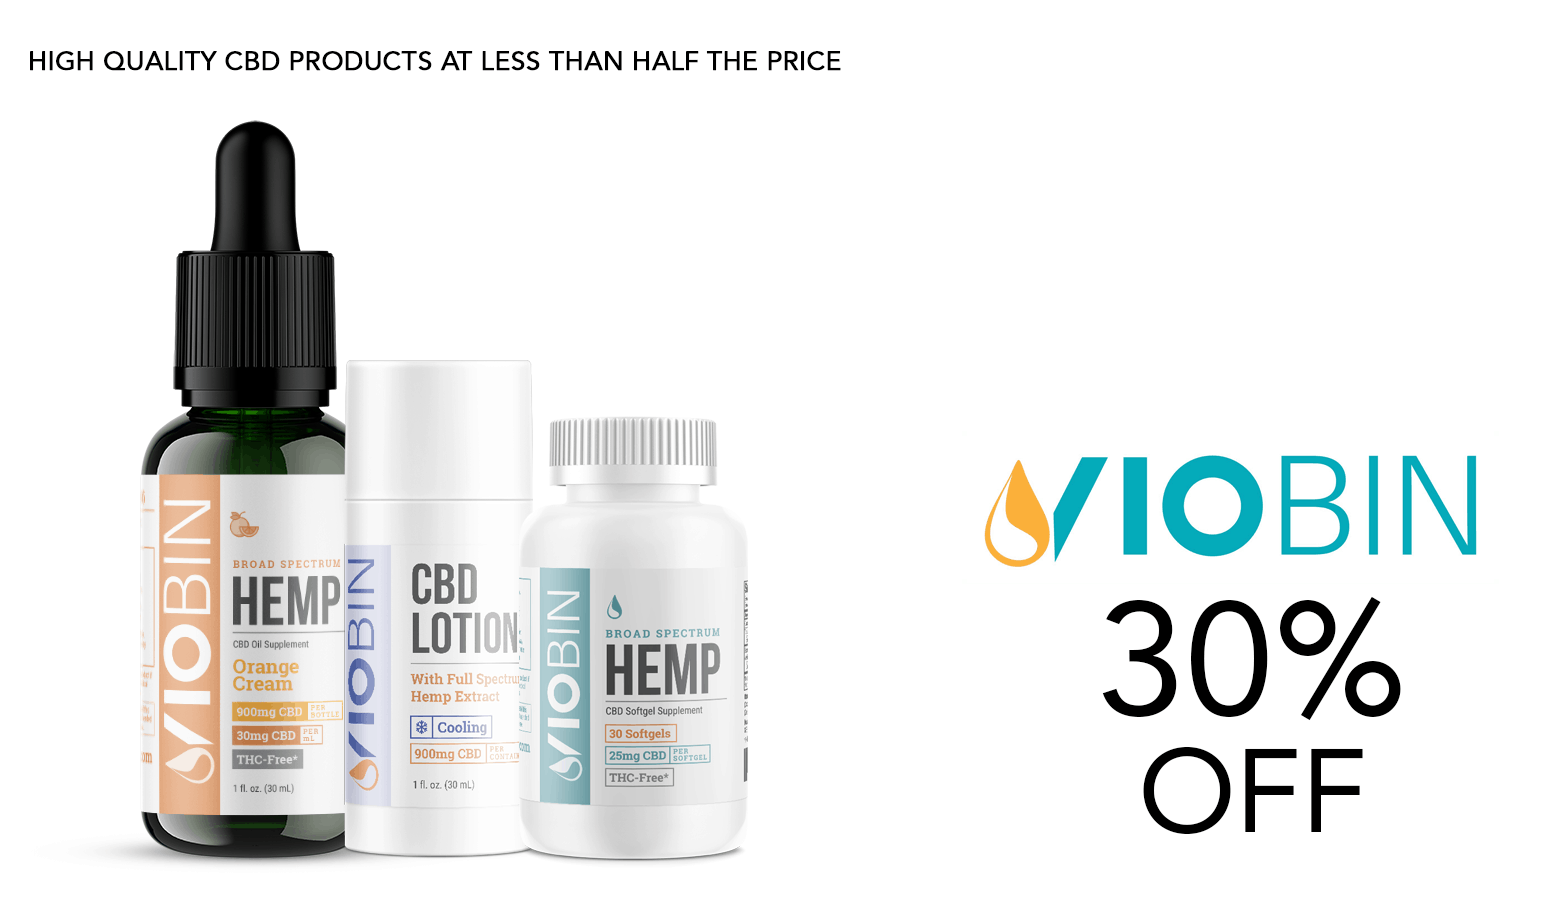 Viobin CBD Coupon Code Offer Website